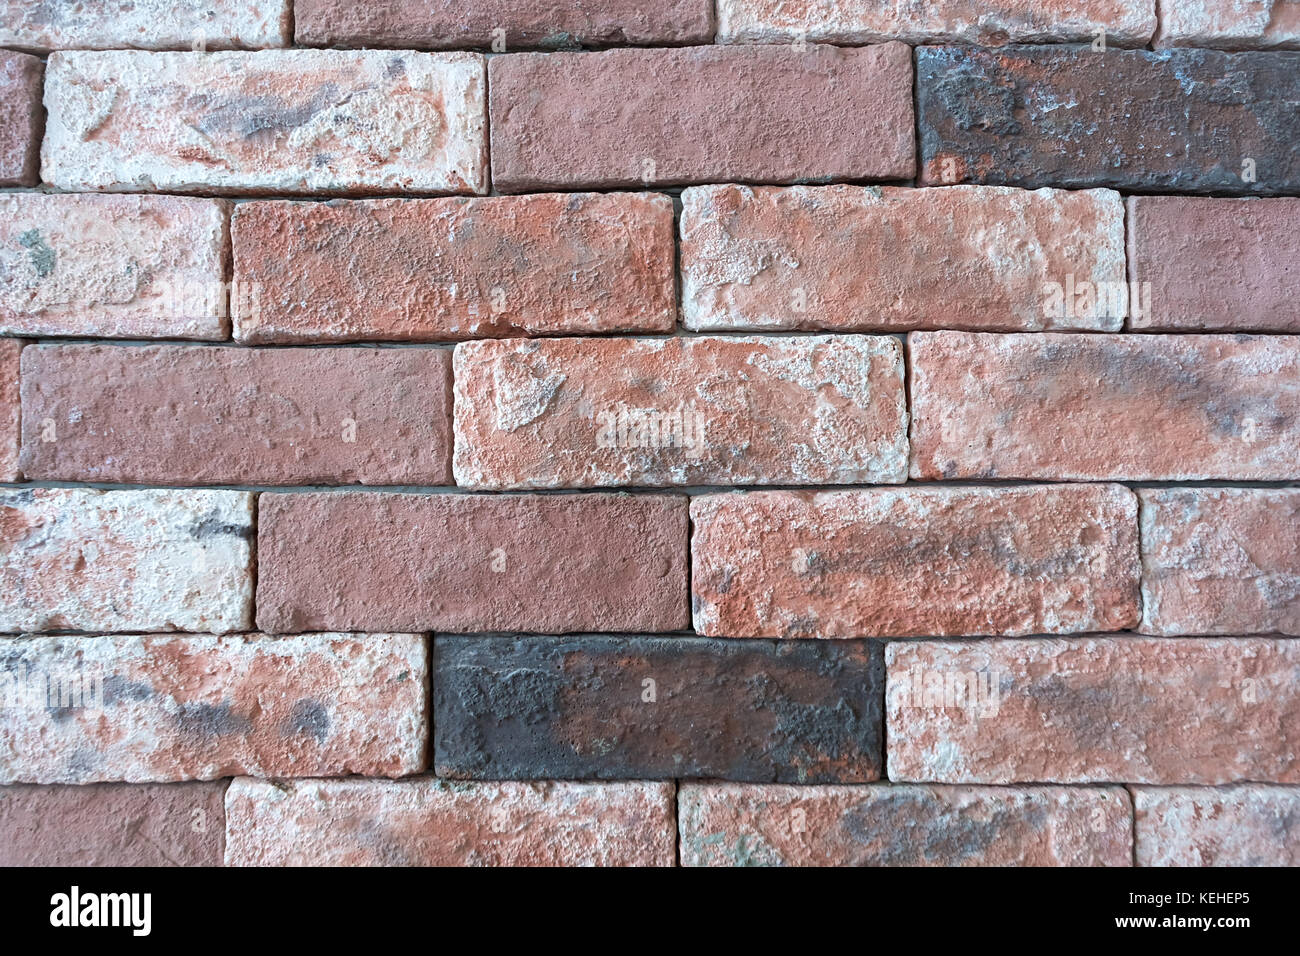 Close-up detailed brick wall that show texture, detail, can used as graphic resource, wallpaper, background - Stock Image